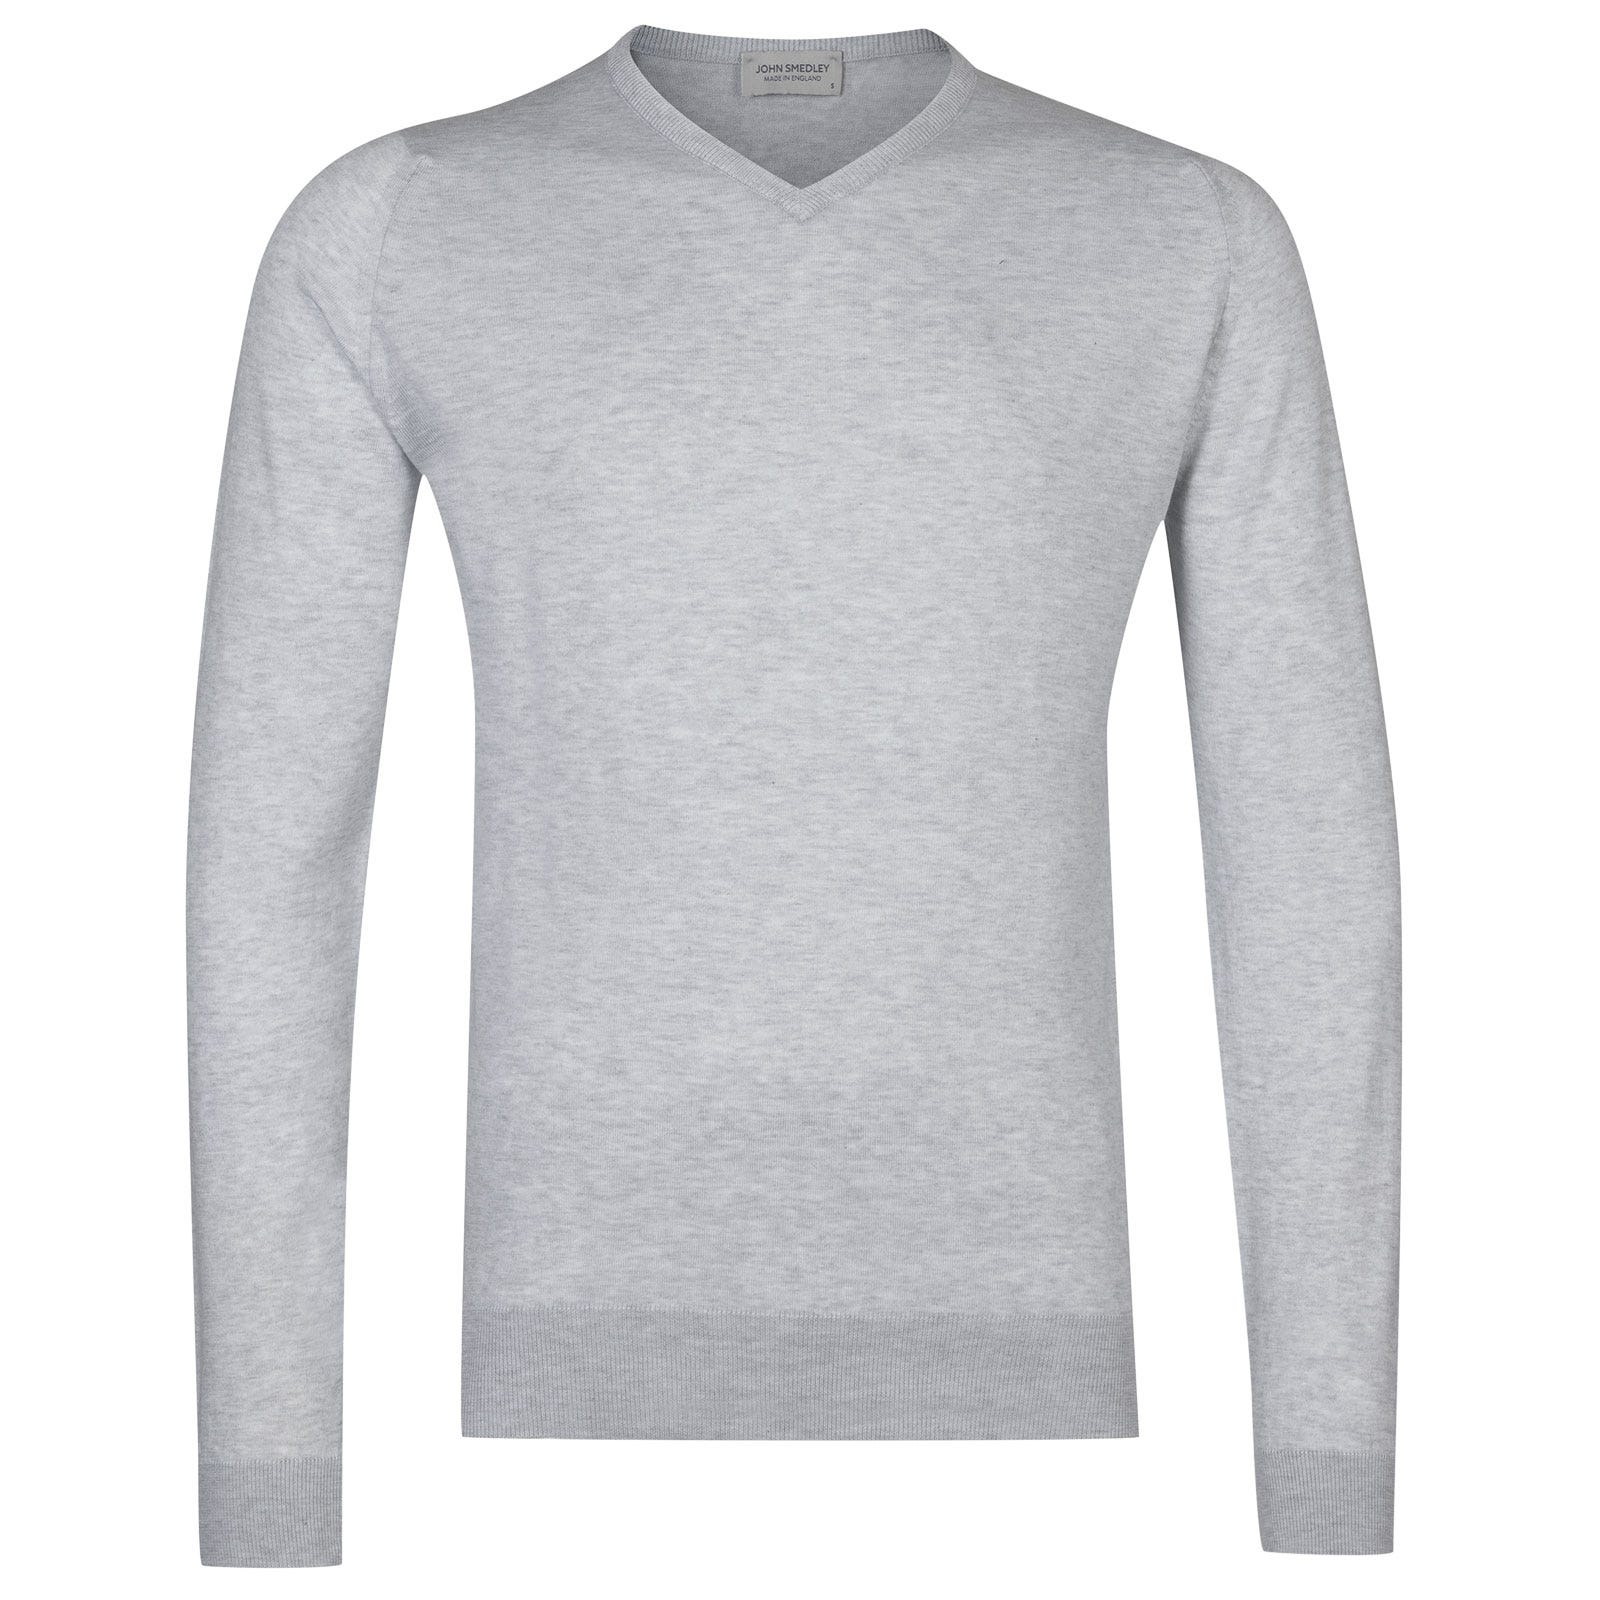 John Smedley Aydon Sea Island Cotton Pullover in Feather Grey-XL